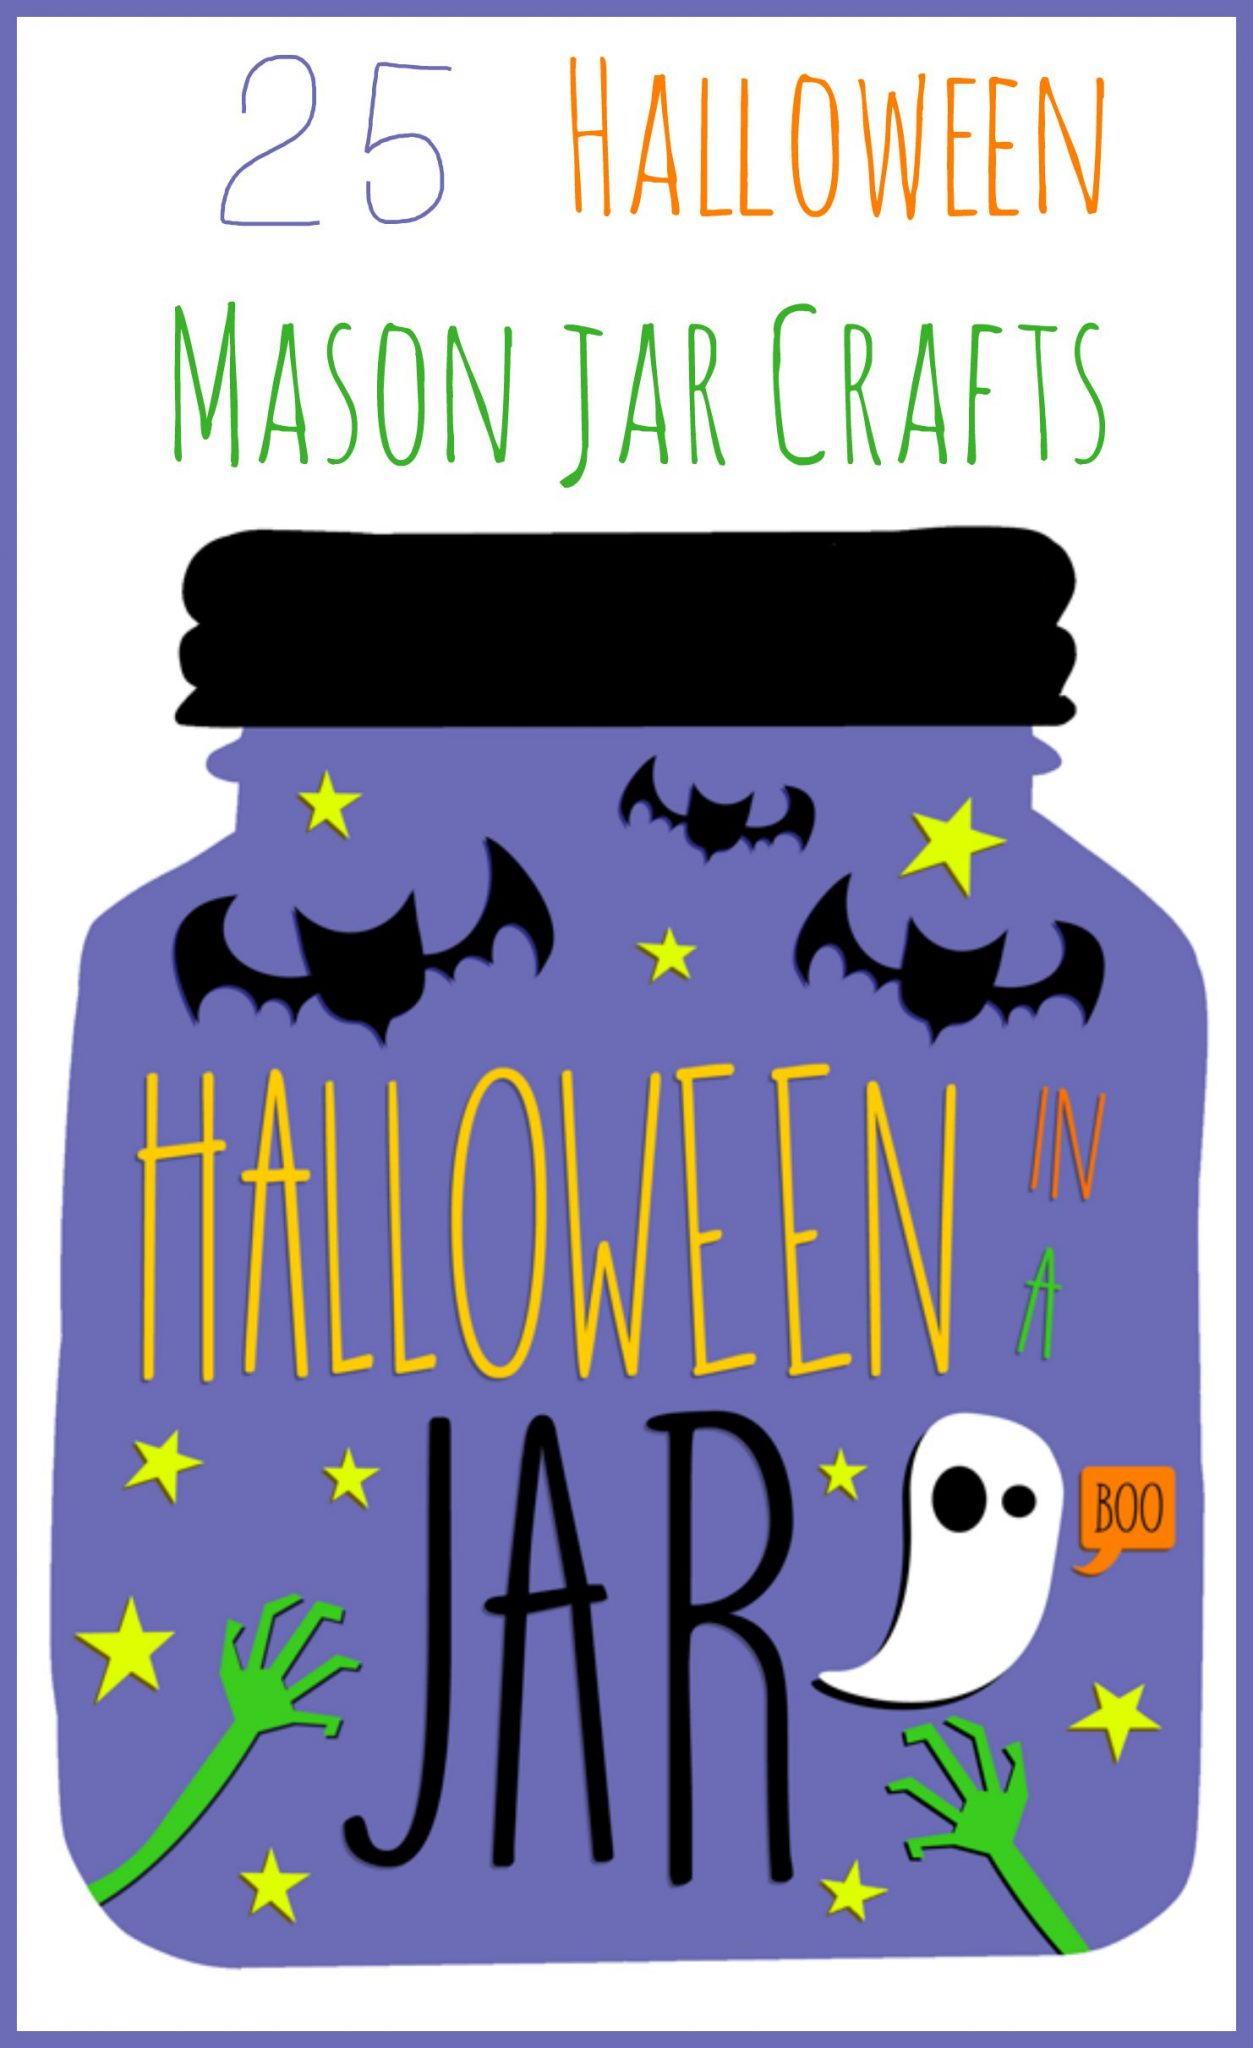 25 Halloween mason jar crafts -- ideas for your Halloween decorations, treats, and so much more!